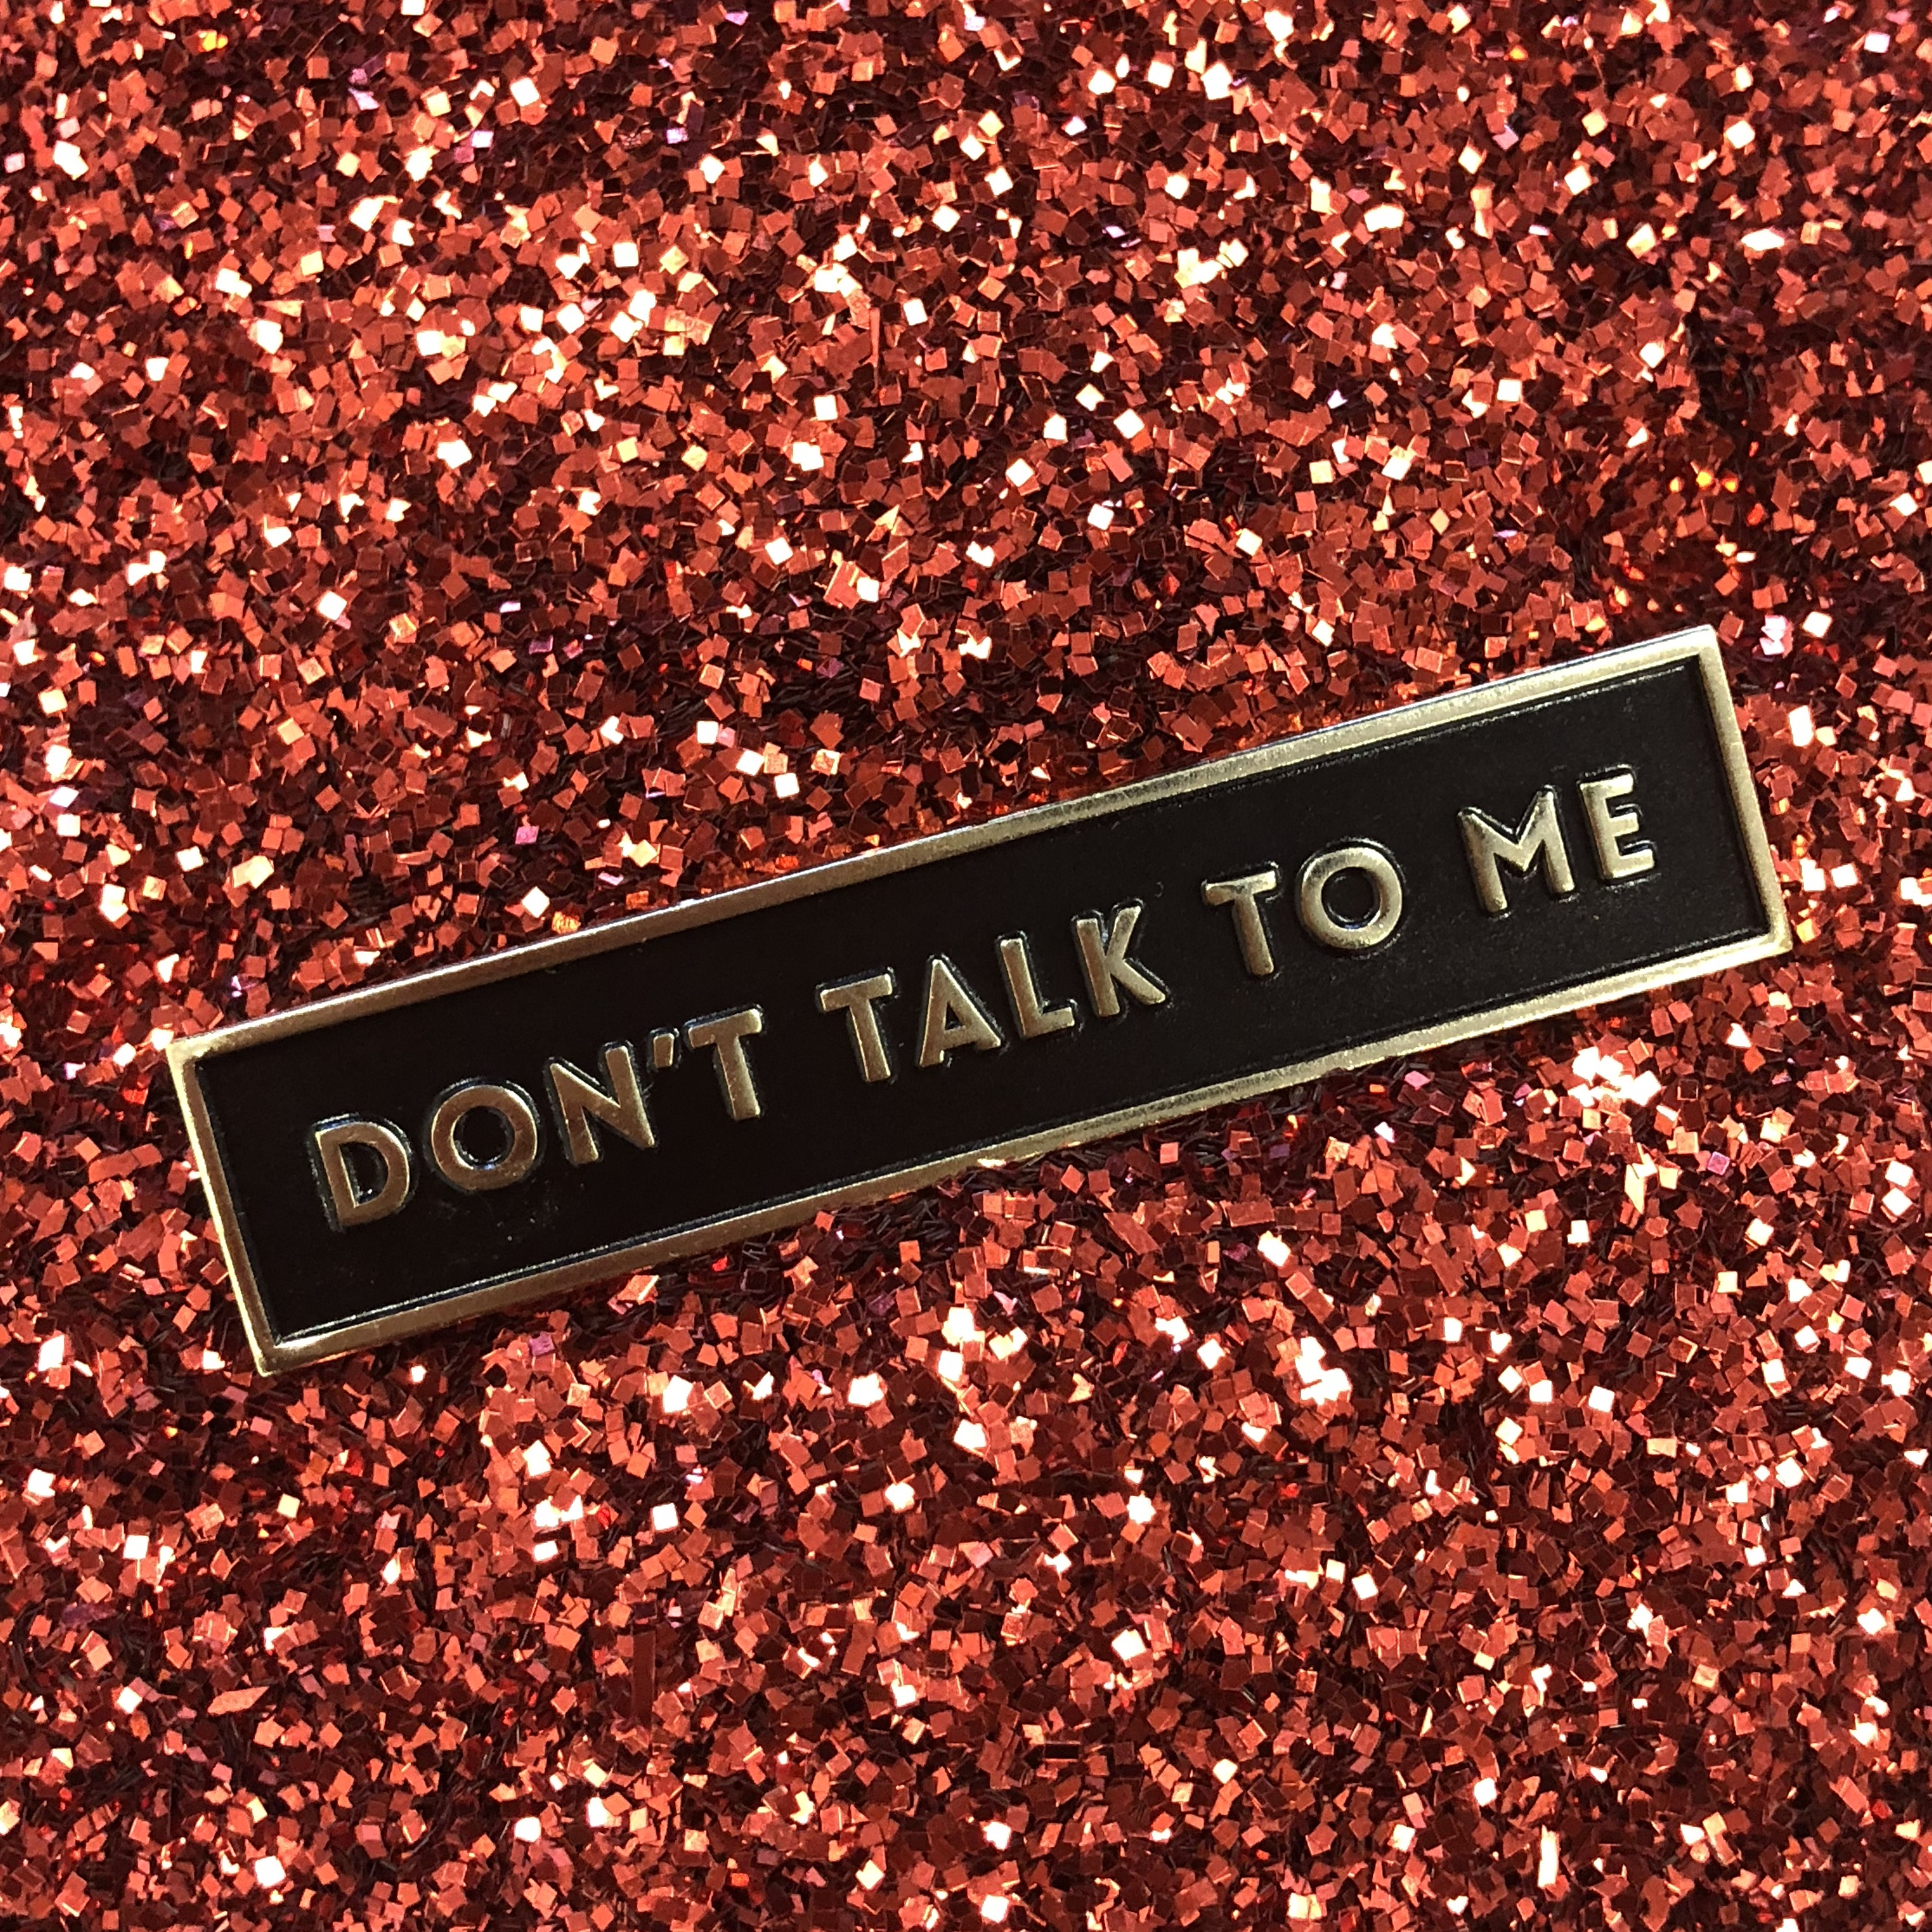 "#007 DON'T TALK TO ME BADGE  $12 Retail | $6 Wholesale | 2.5"" Wide"